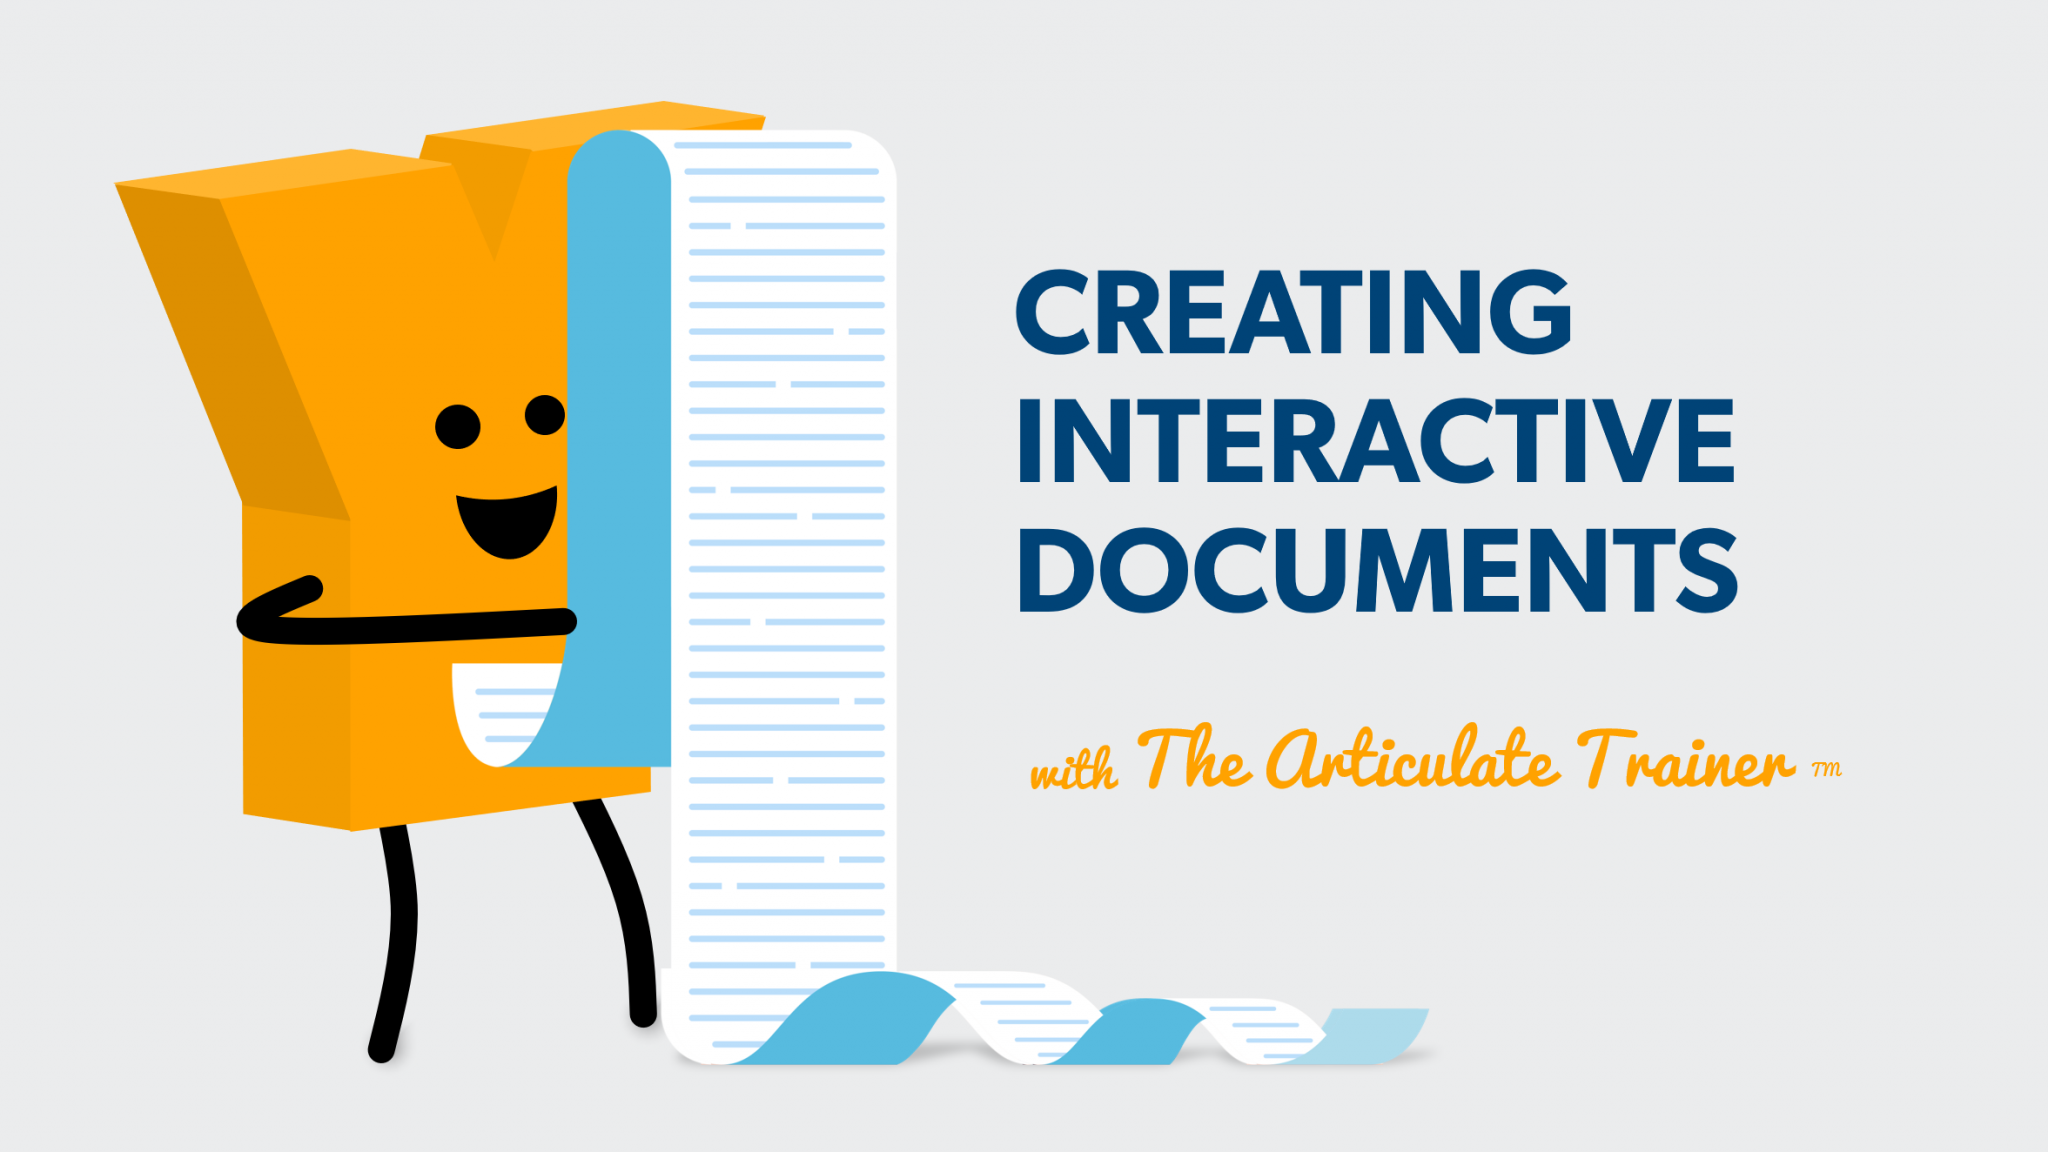 Using Sliders to Create Interactive Documents